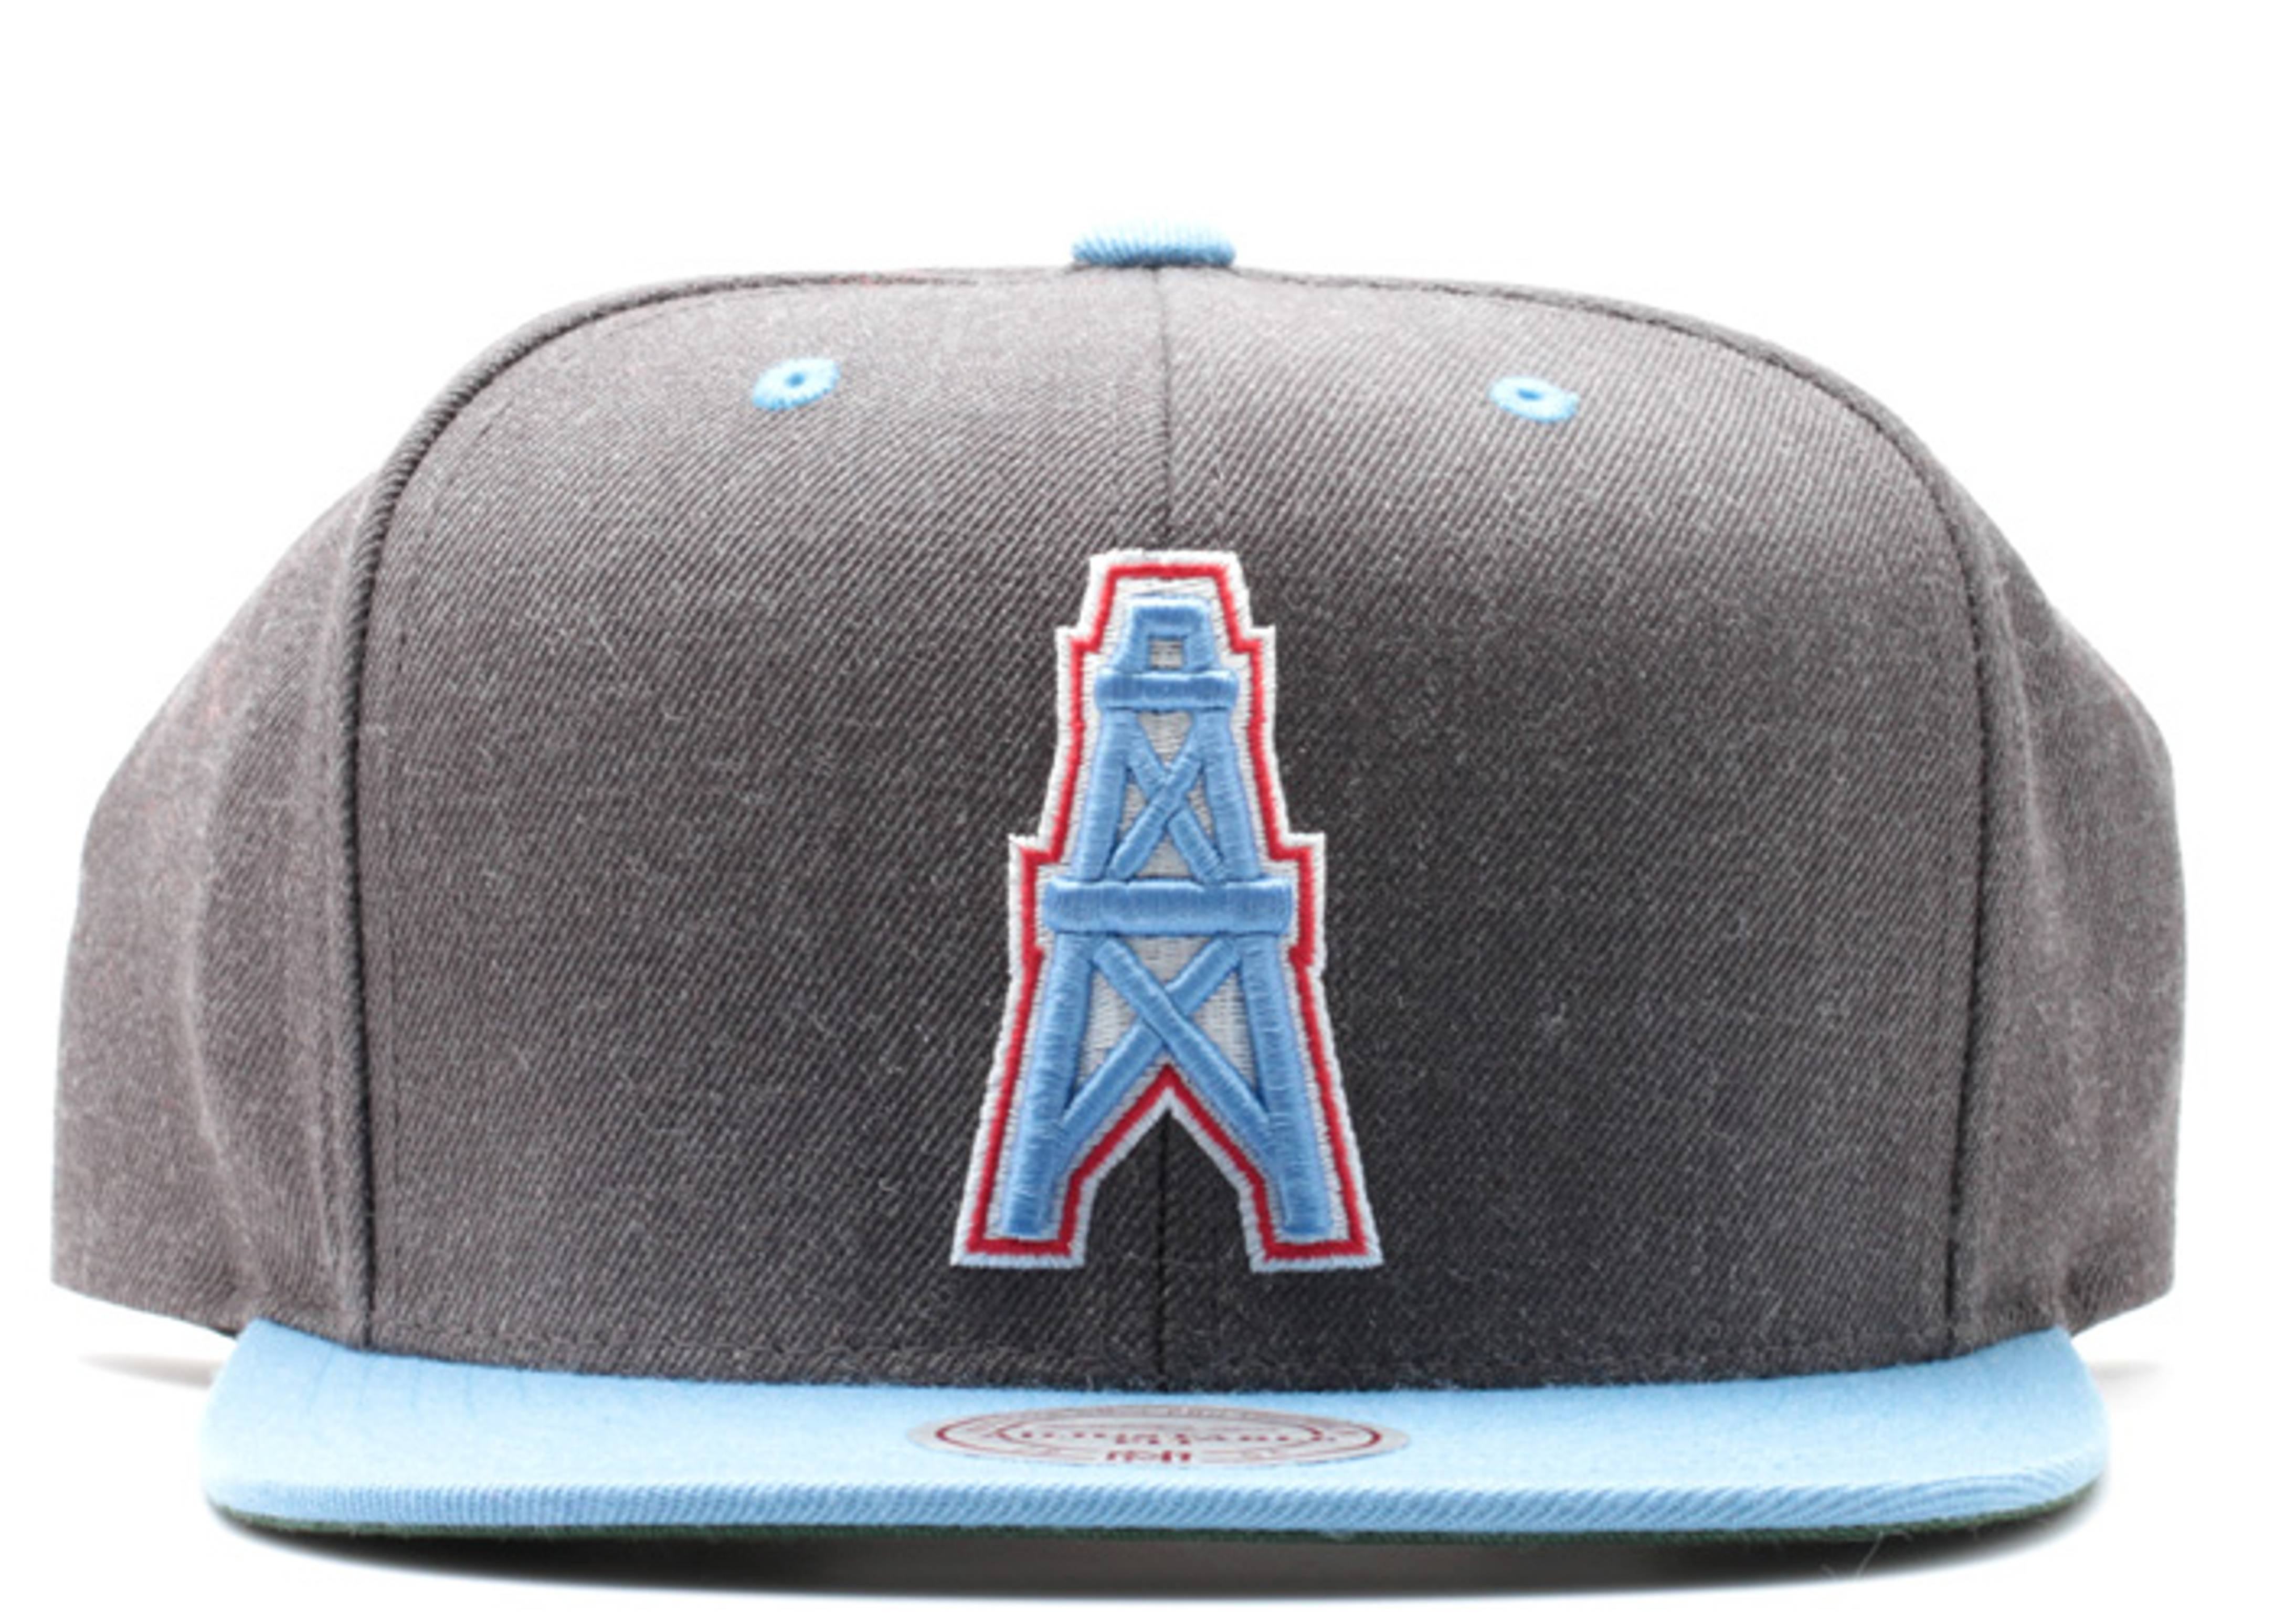 654f0bcfb Houston Oilers Snap-back - Mitchell & Ness - vd36gte6oiler - dark ...